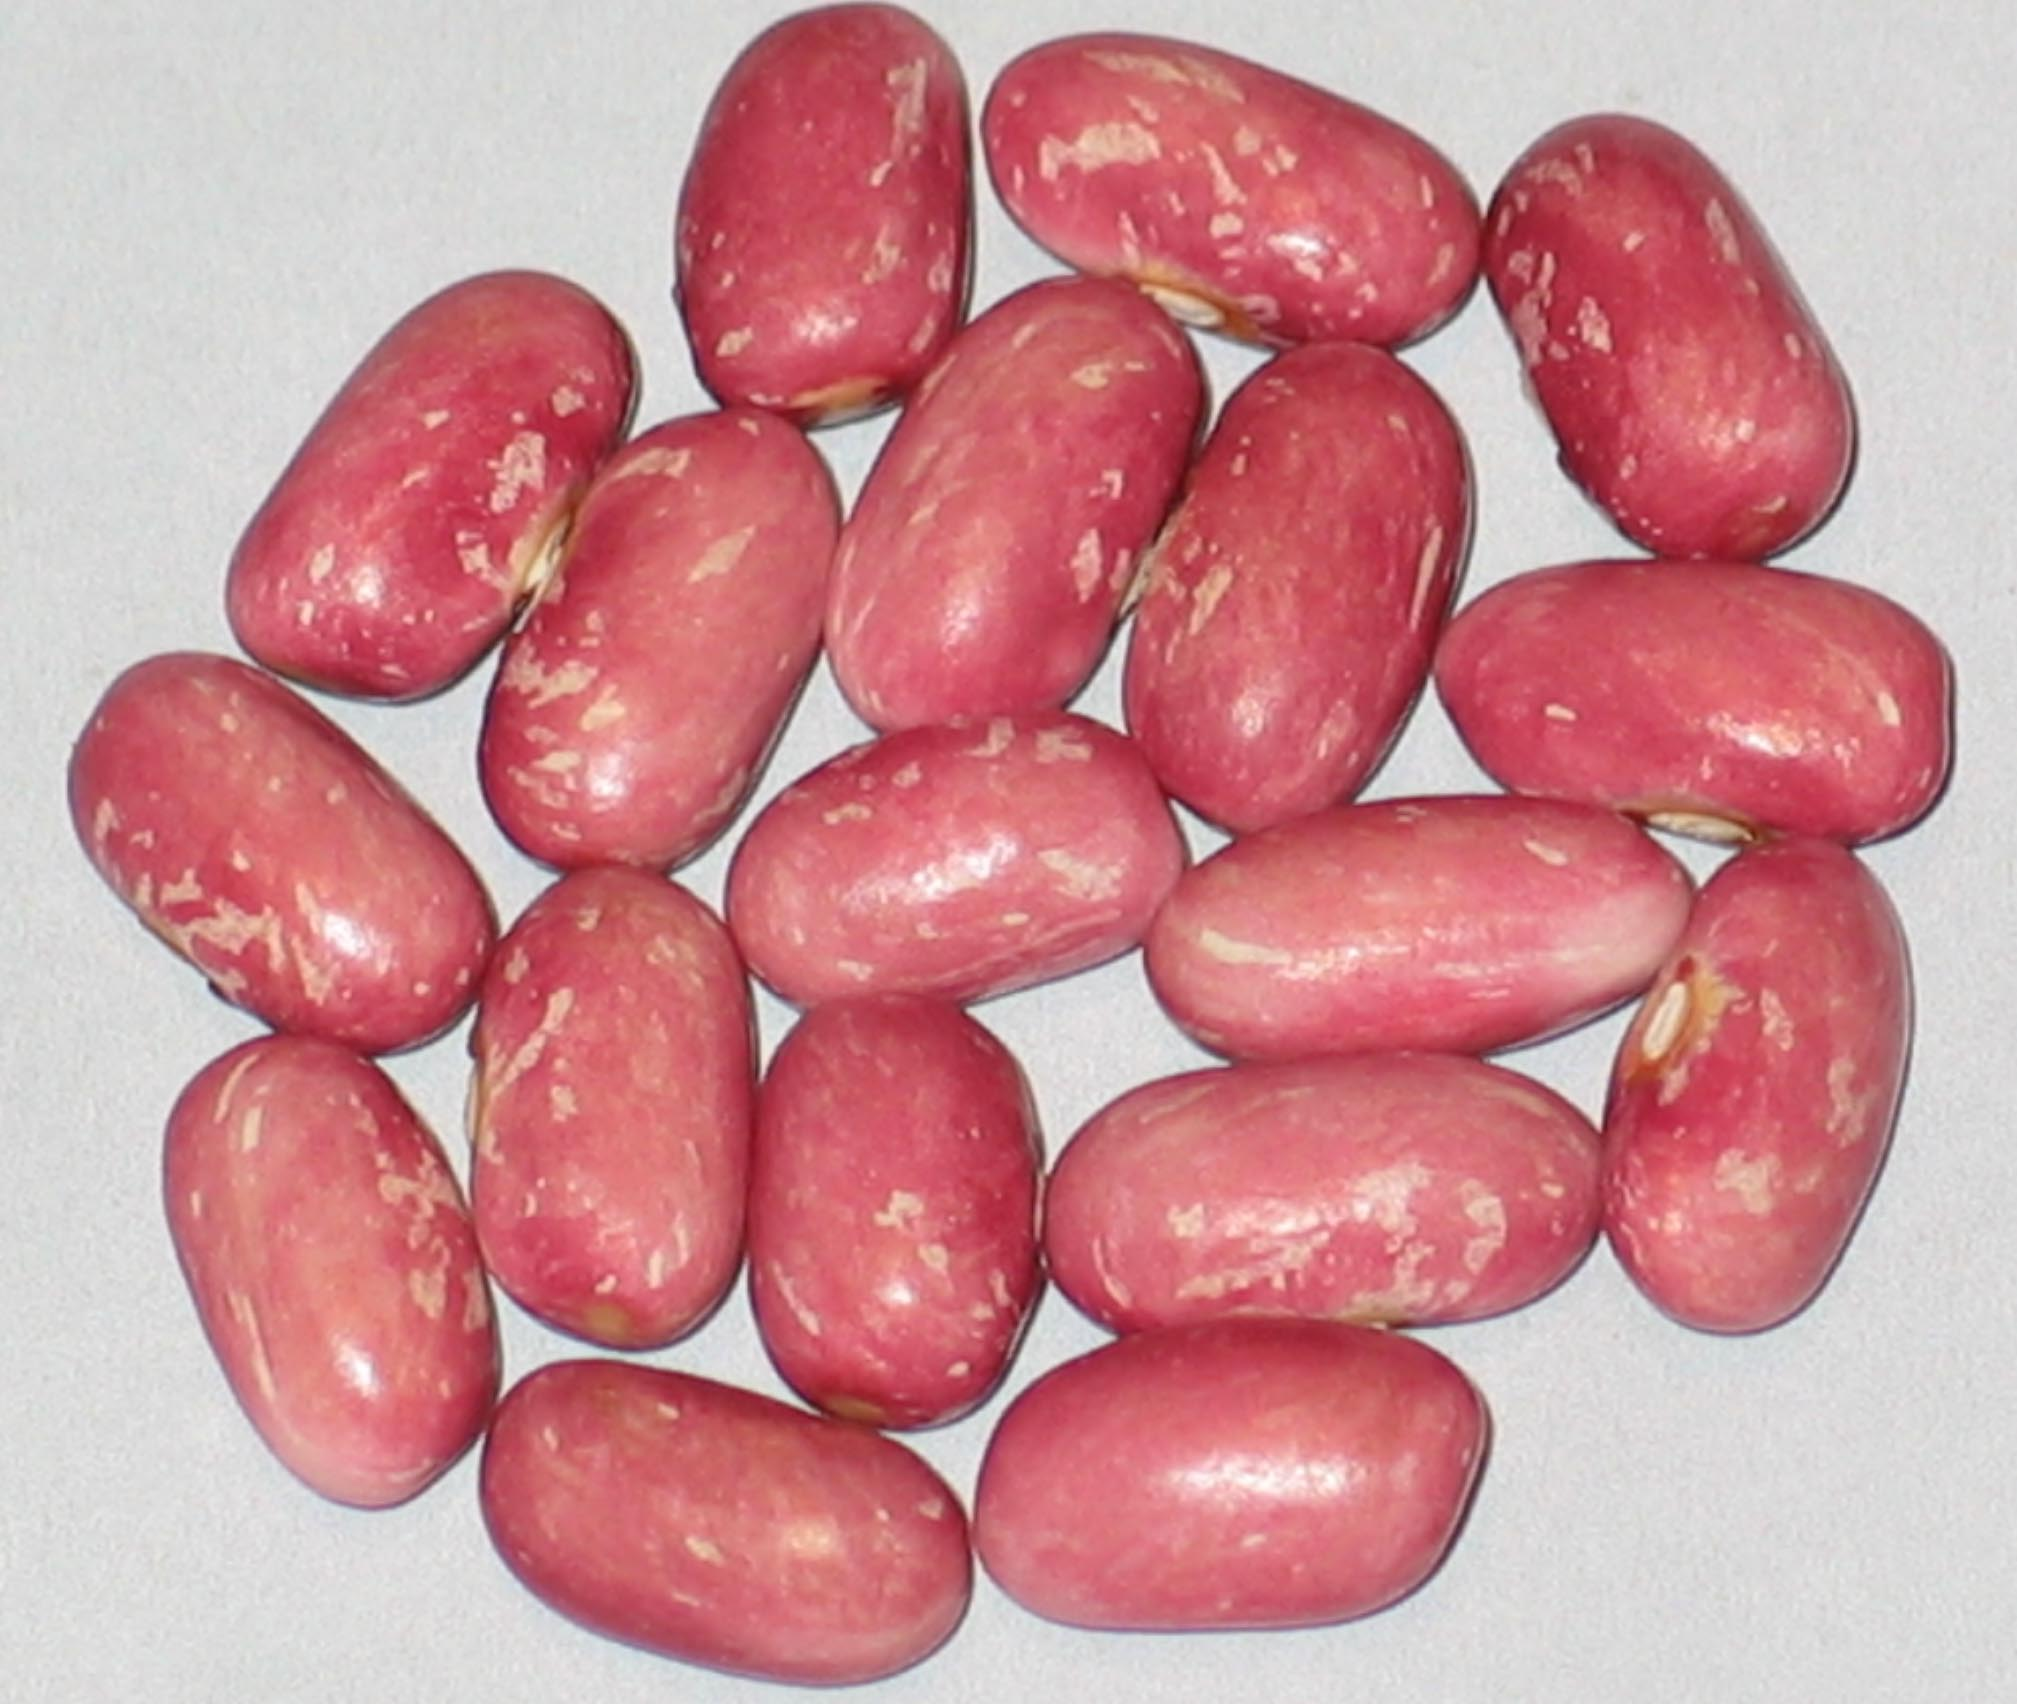 image of Princess Rose beans